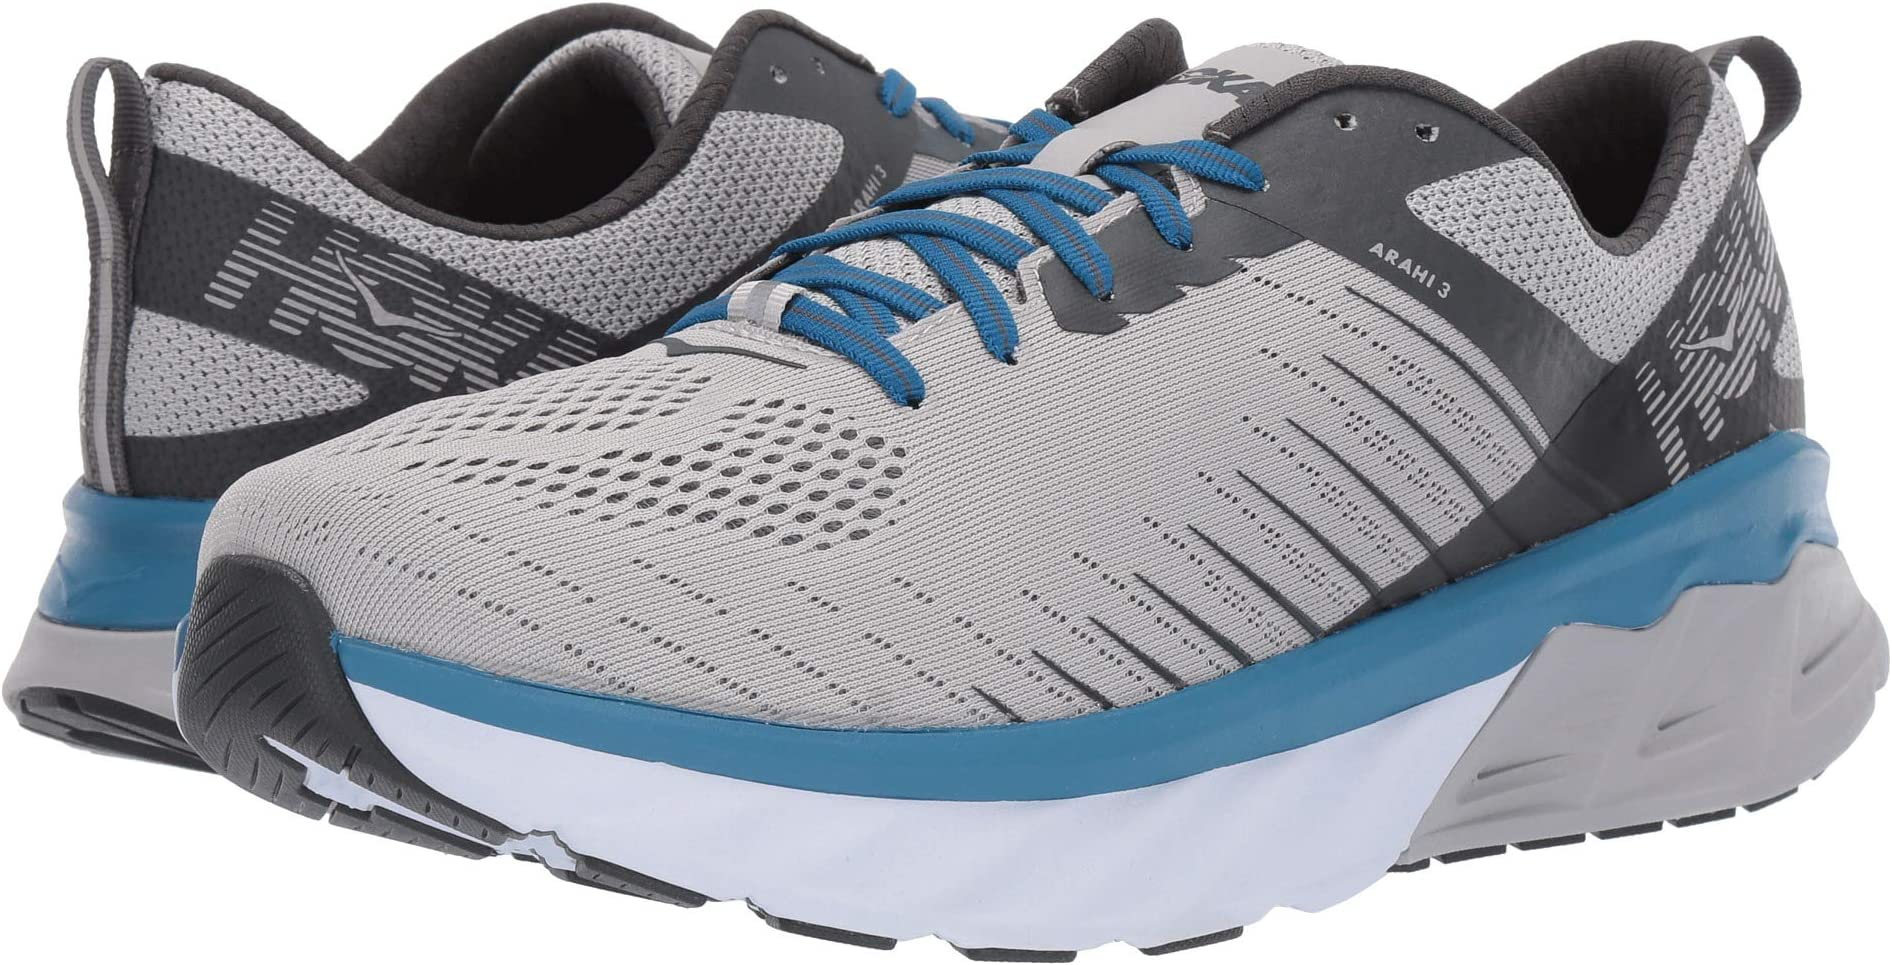 HOKA ONE ONE Shoes